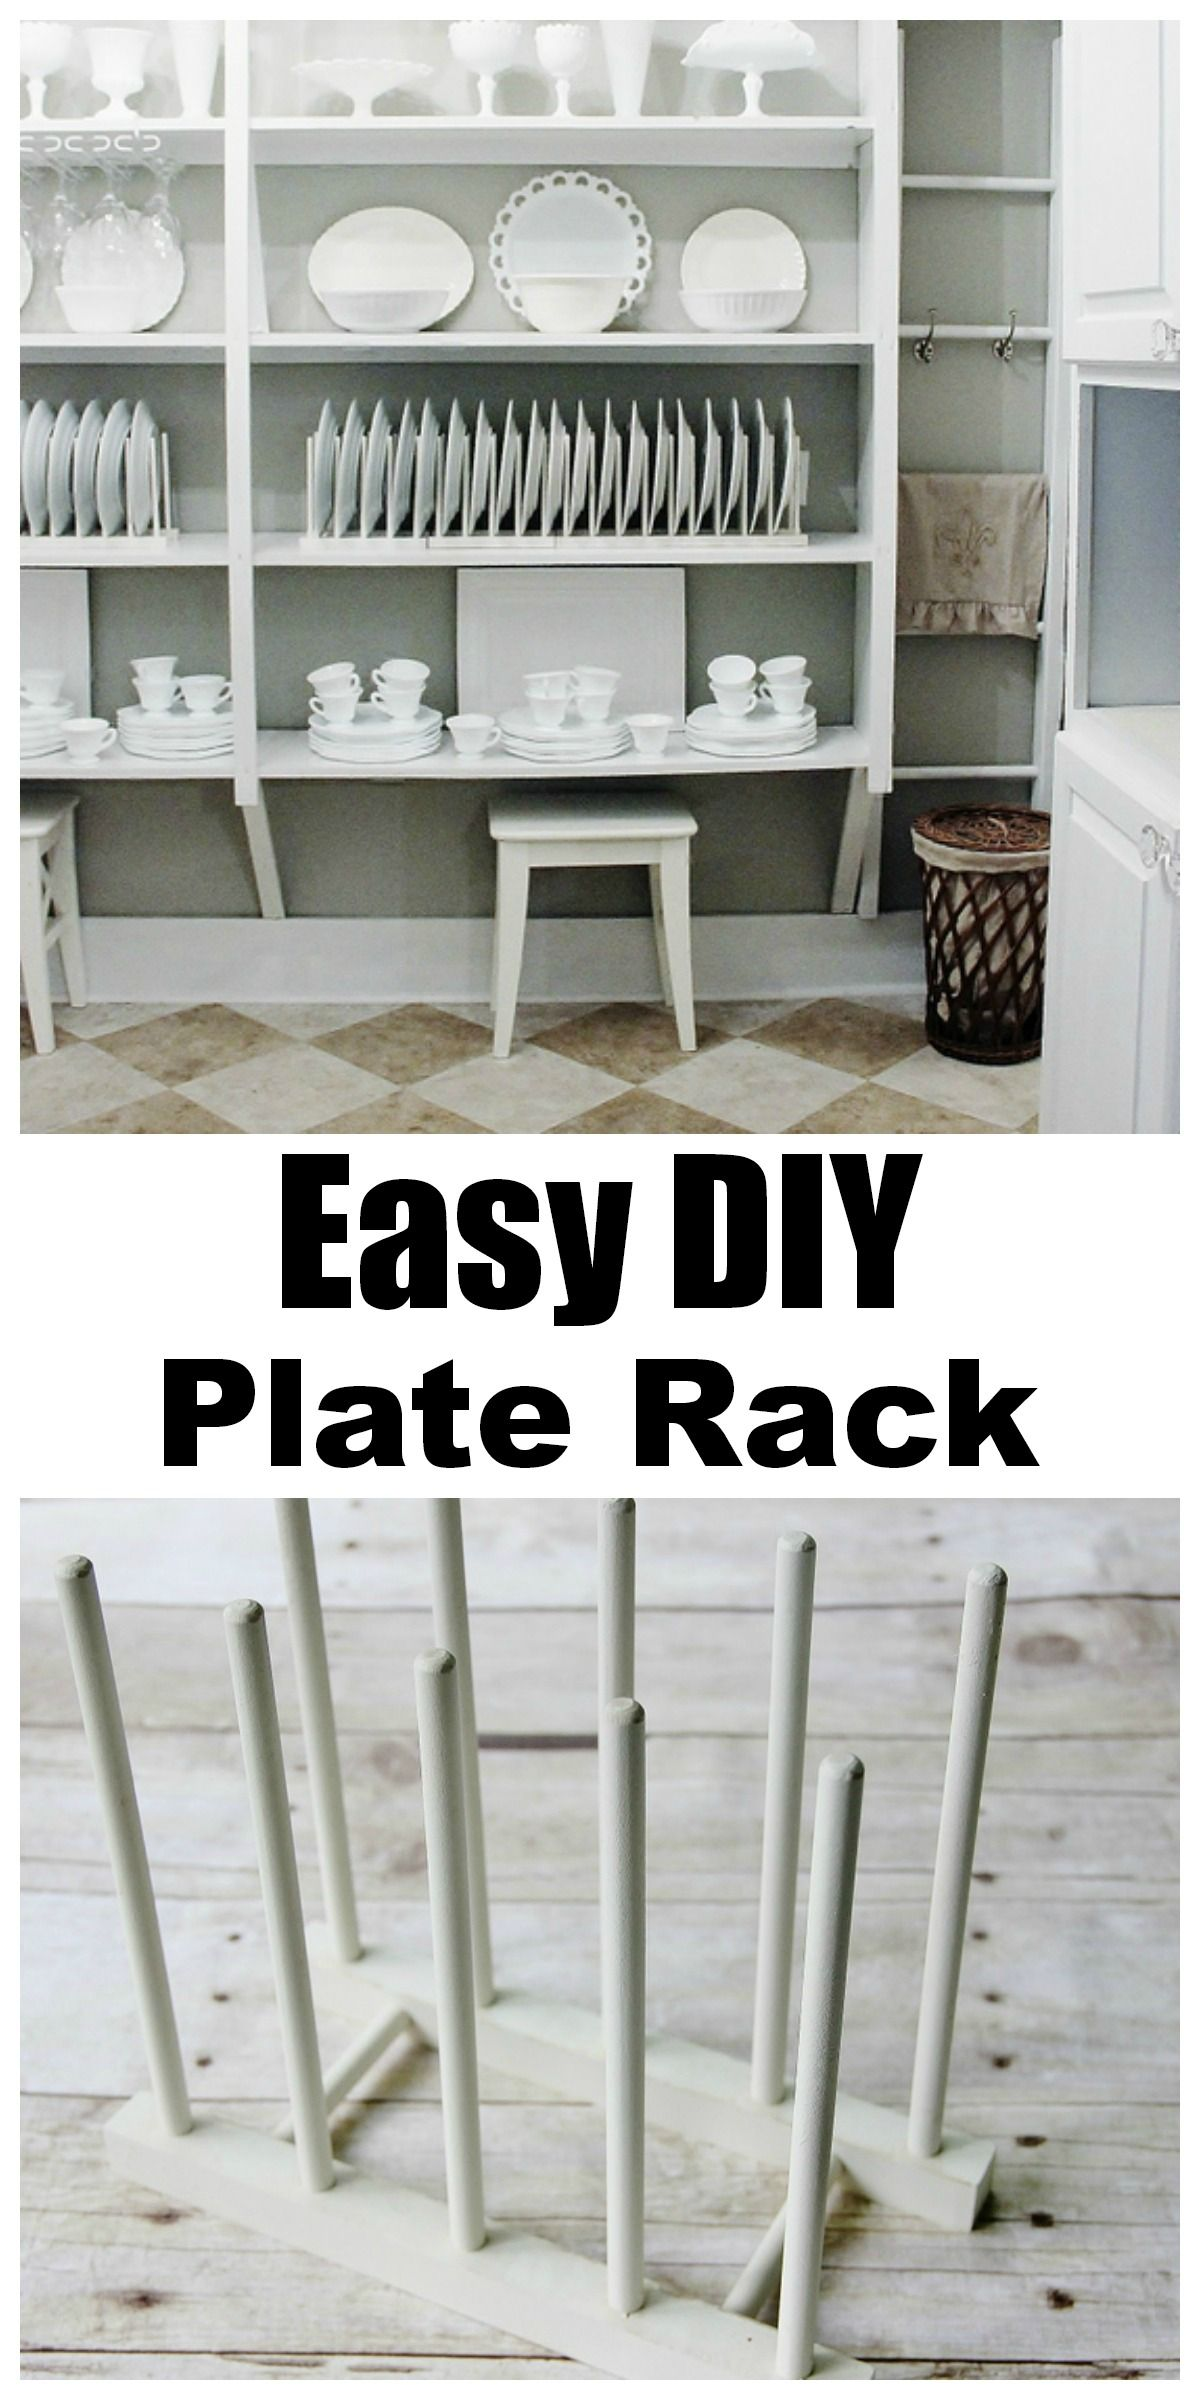 Wooden Plate Racks For Kitchens Simple Plate Display Rack Pot Lids Farms And Plate Racks